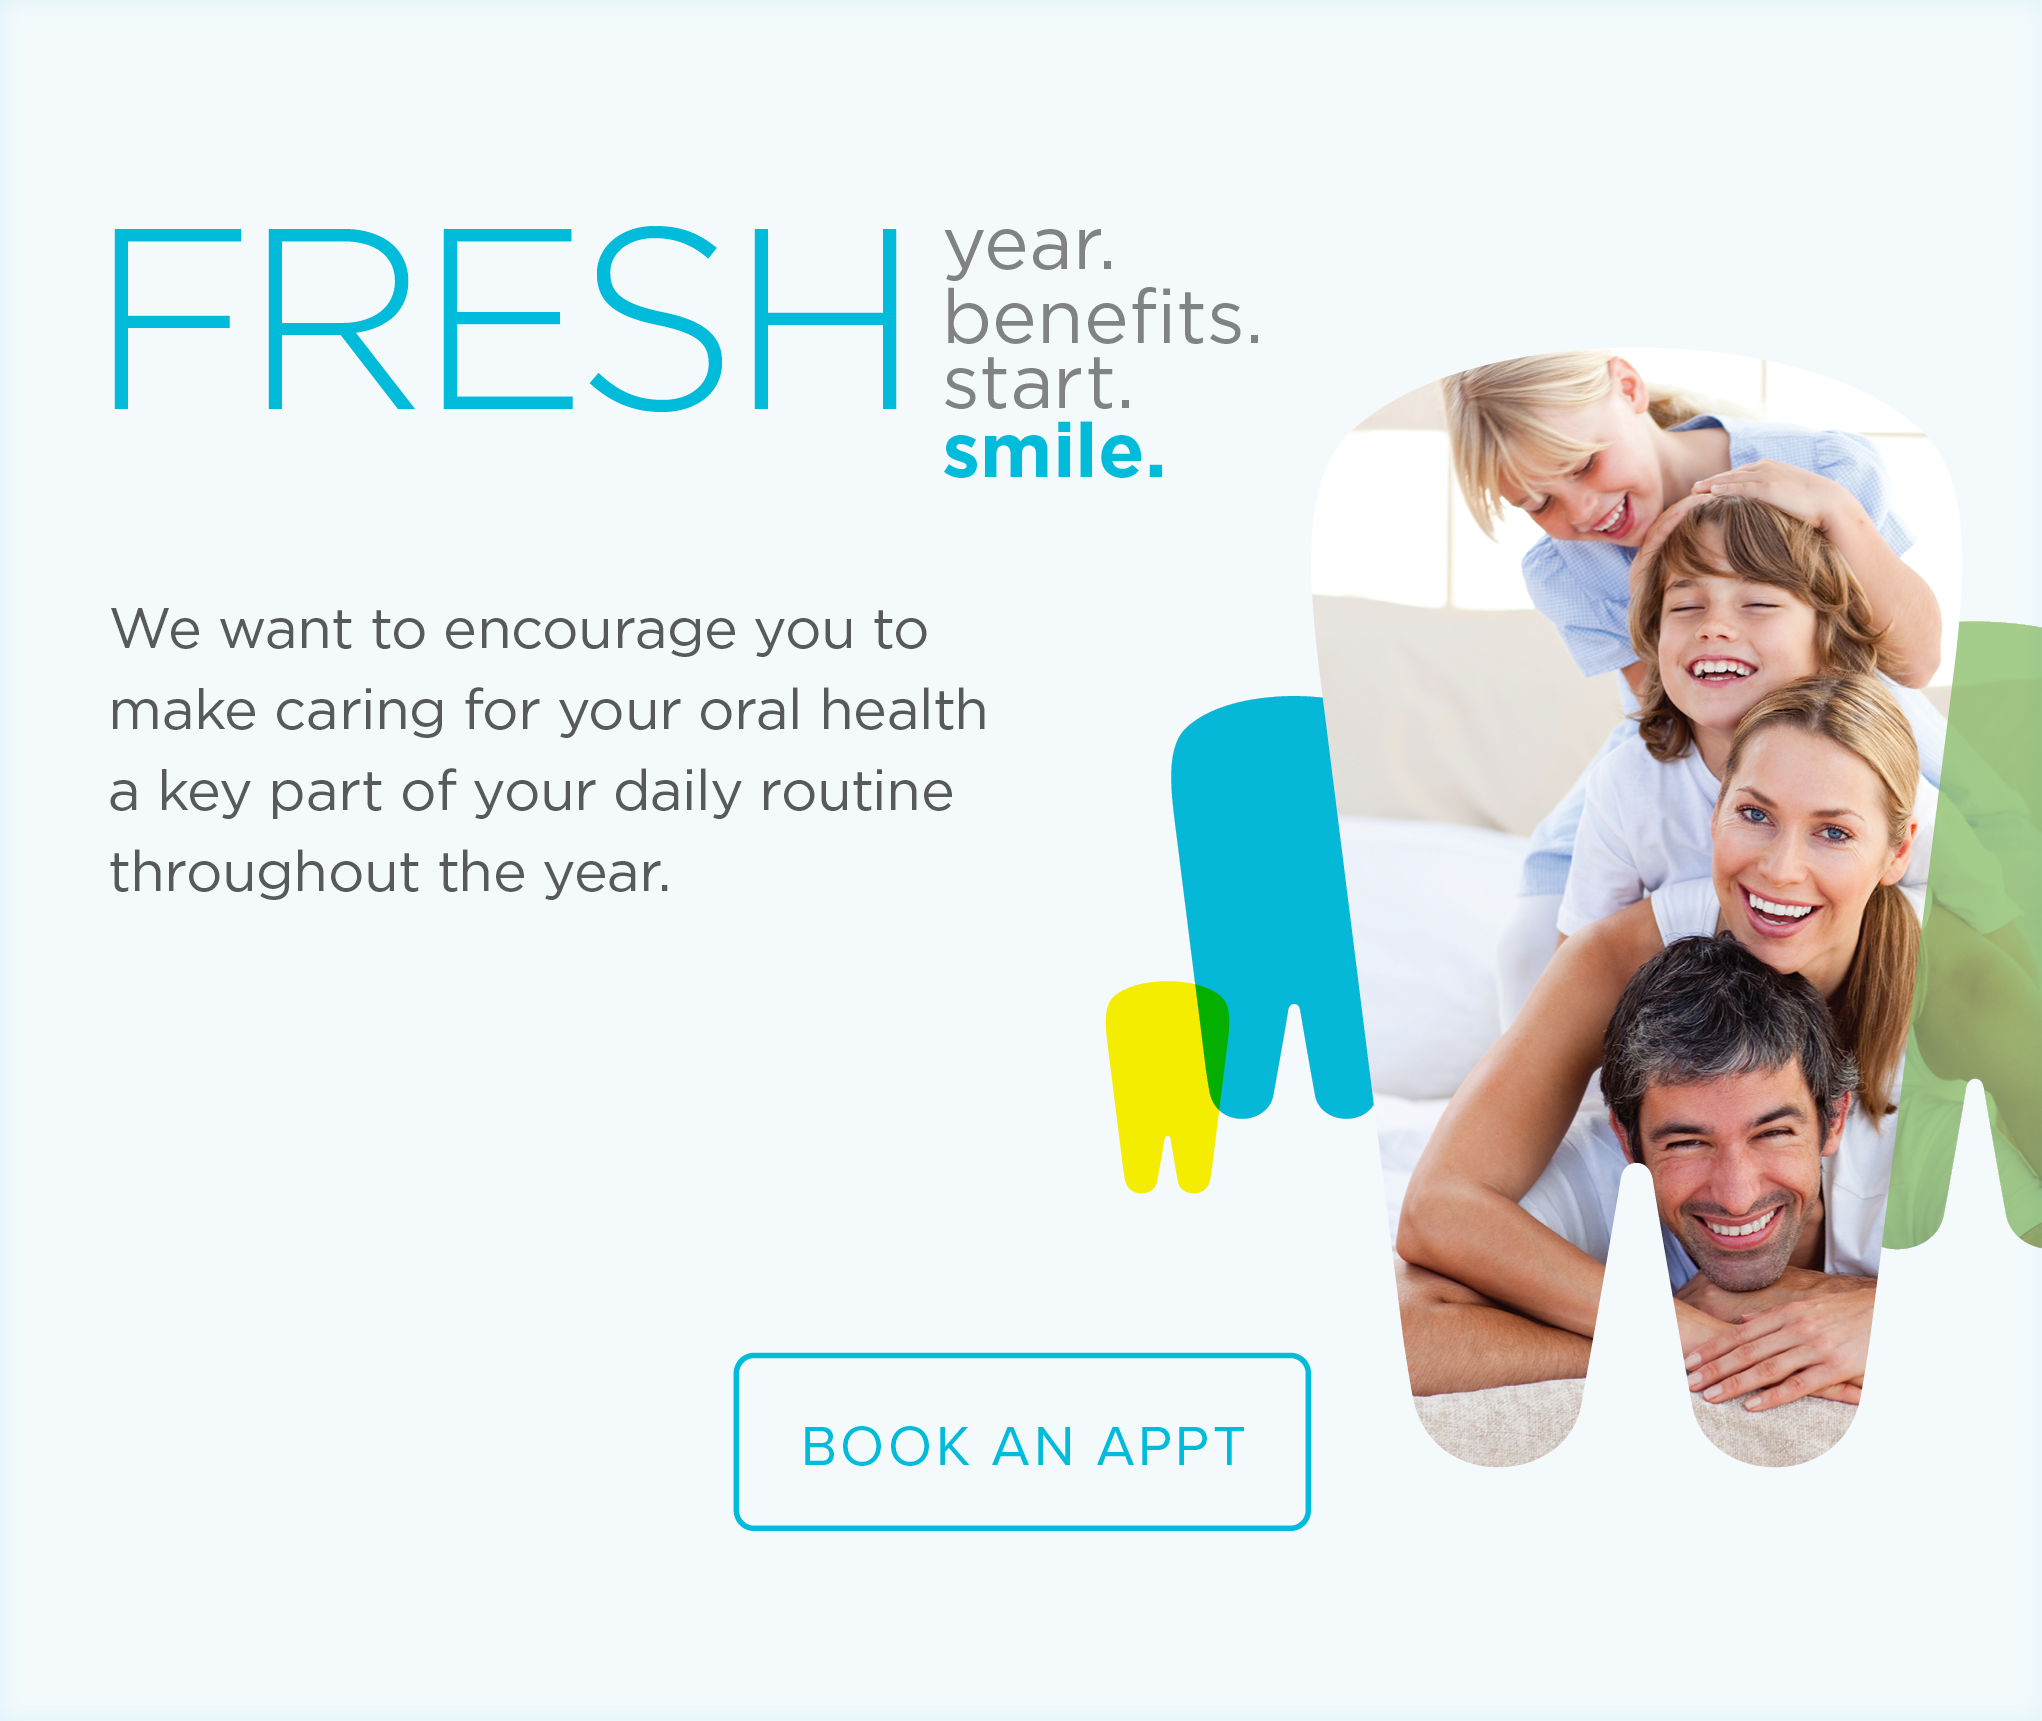 Scottsdale and Shea Dental Group - Make the Most of Your Benefits